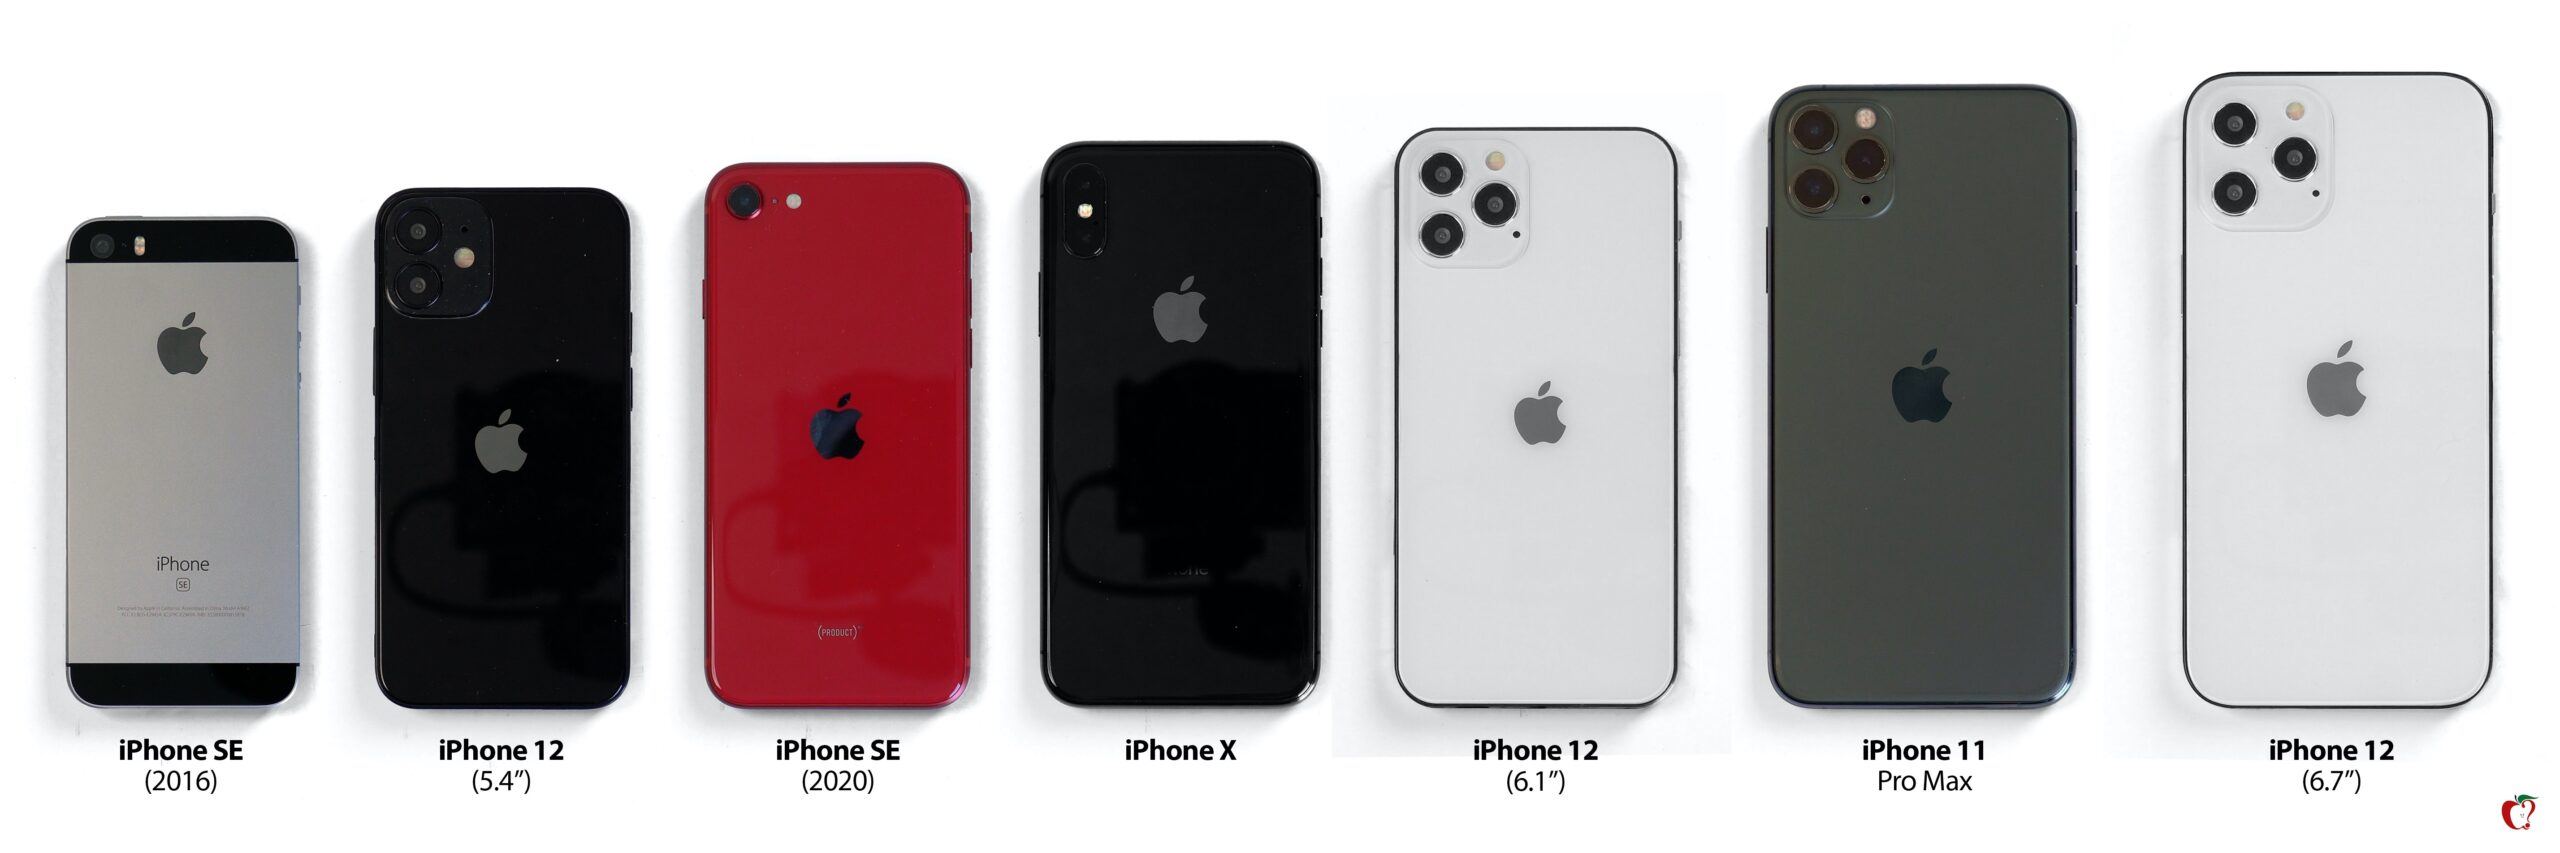 iPhone 12 Sizes Compared Against Older iPhone Models